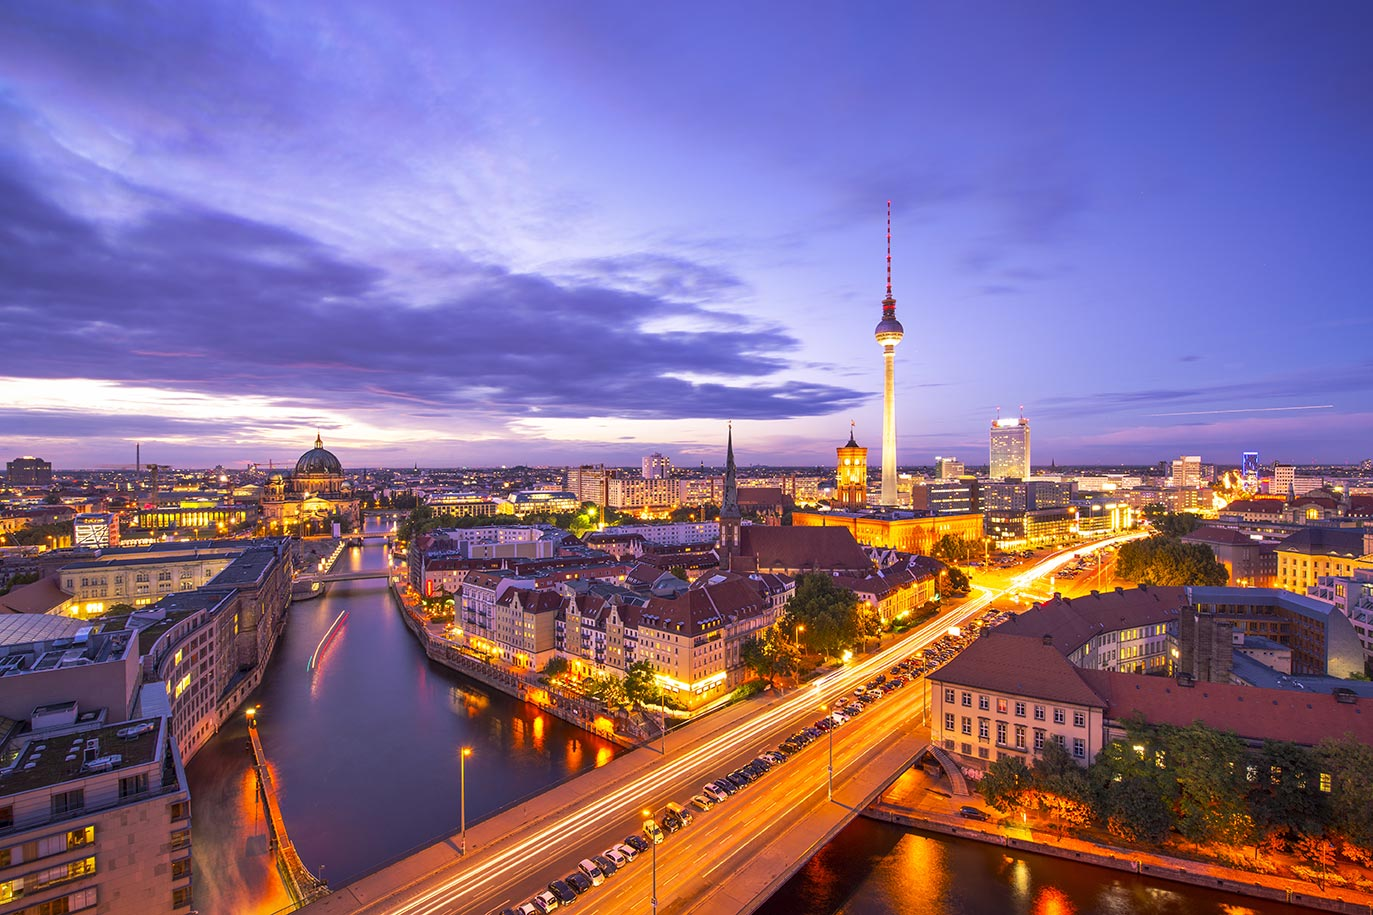 50 Amusing German Phrases That Will Brighten Your Day | The